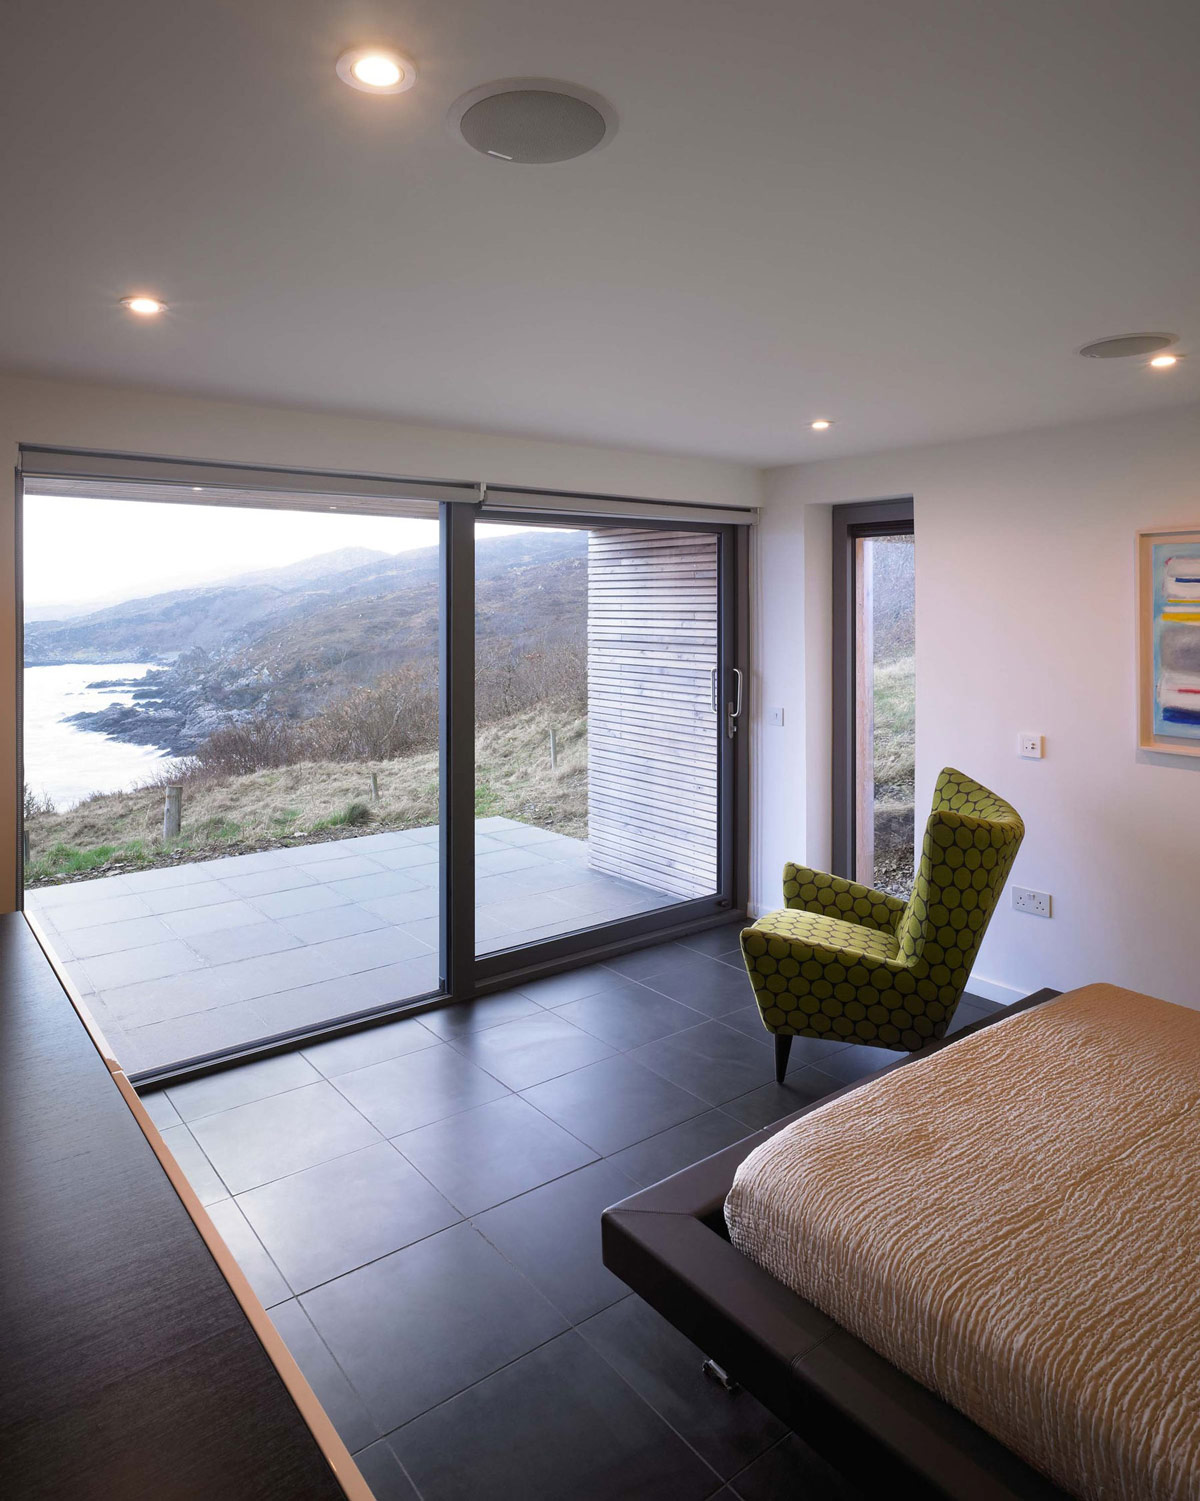 Bedroom, Contemporary Home on the Isle of Skye, Scotland